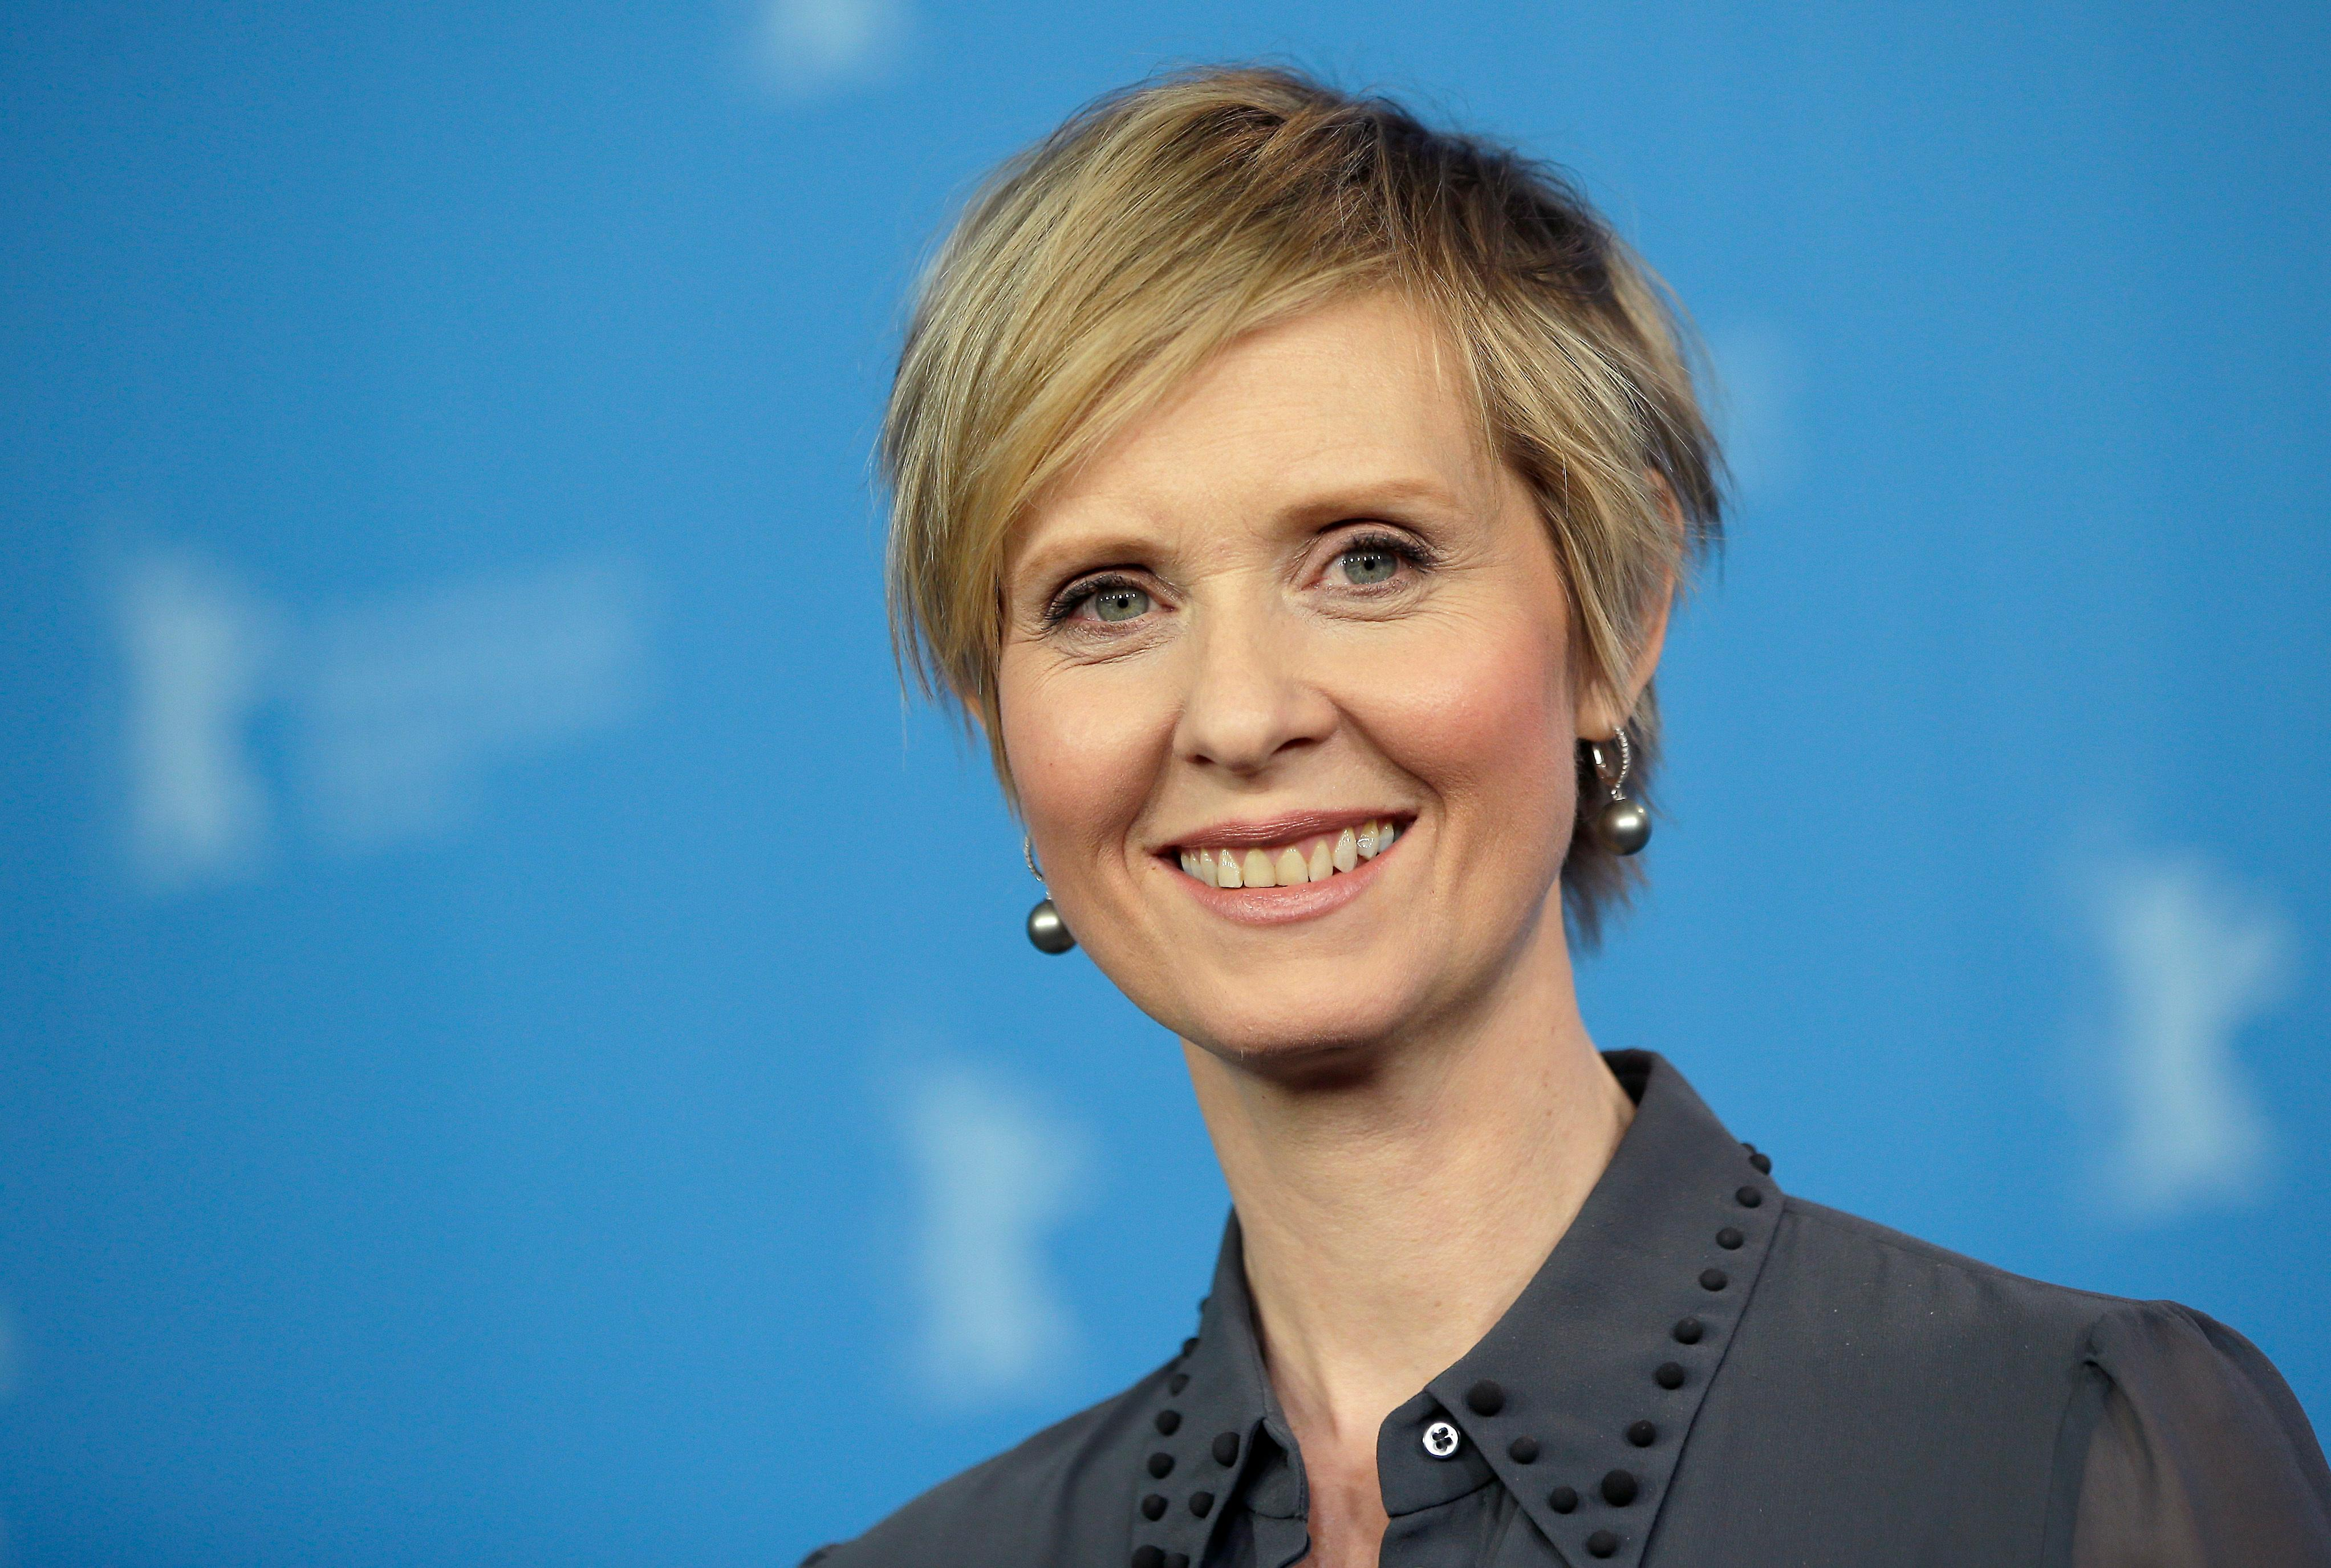 FILE - In this Sunday, Feb. 14, 2016 file photo, Actress Cynthia Nixon poses for the photographers during a photo call for the film 'A Quiet Passion' at the 2016 Berlinale Film Festival in Berlin, Germany,  Cynthia Nixon's name is being mentioned as a possible candidate for governor in New York, Friday, Aug. 4, 2017. (AP Photo/Michael Sohn, File)